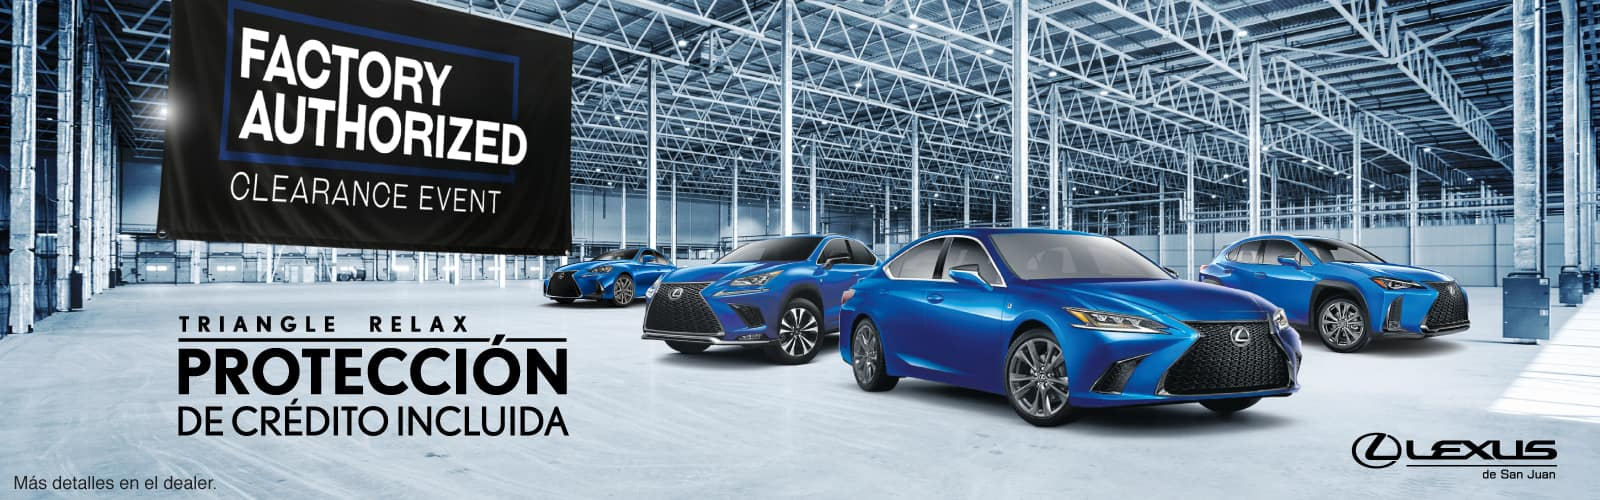 Lexus Authorized Clearance Event Octubre Web Banners 2